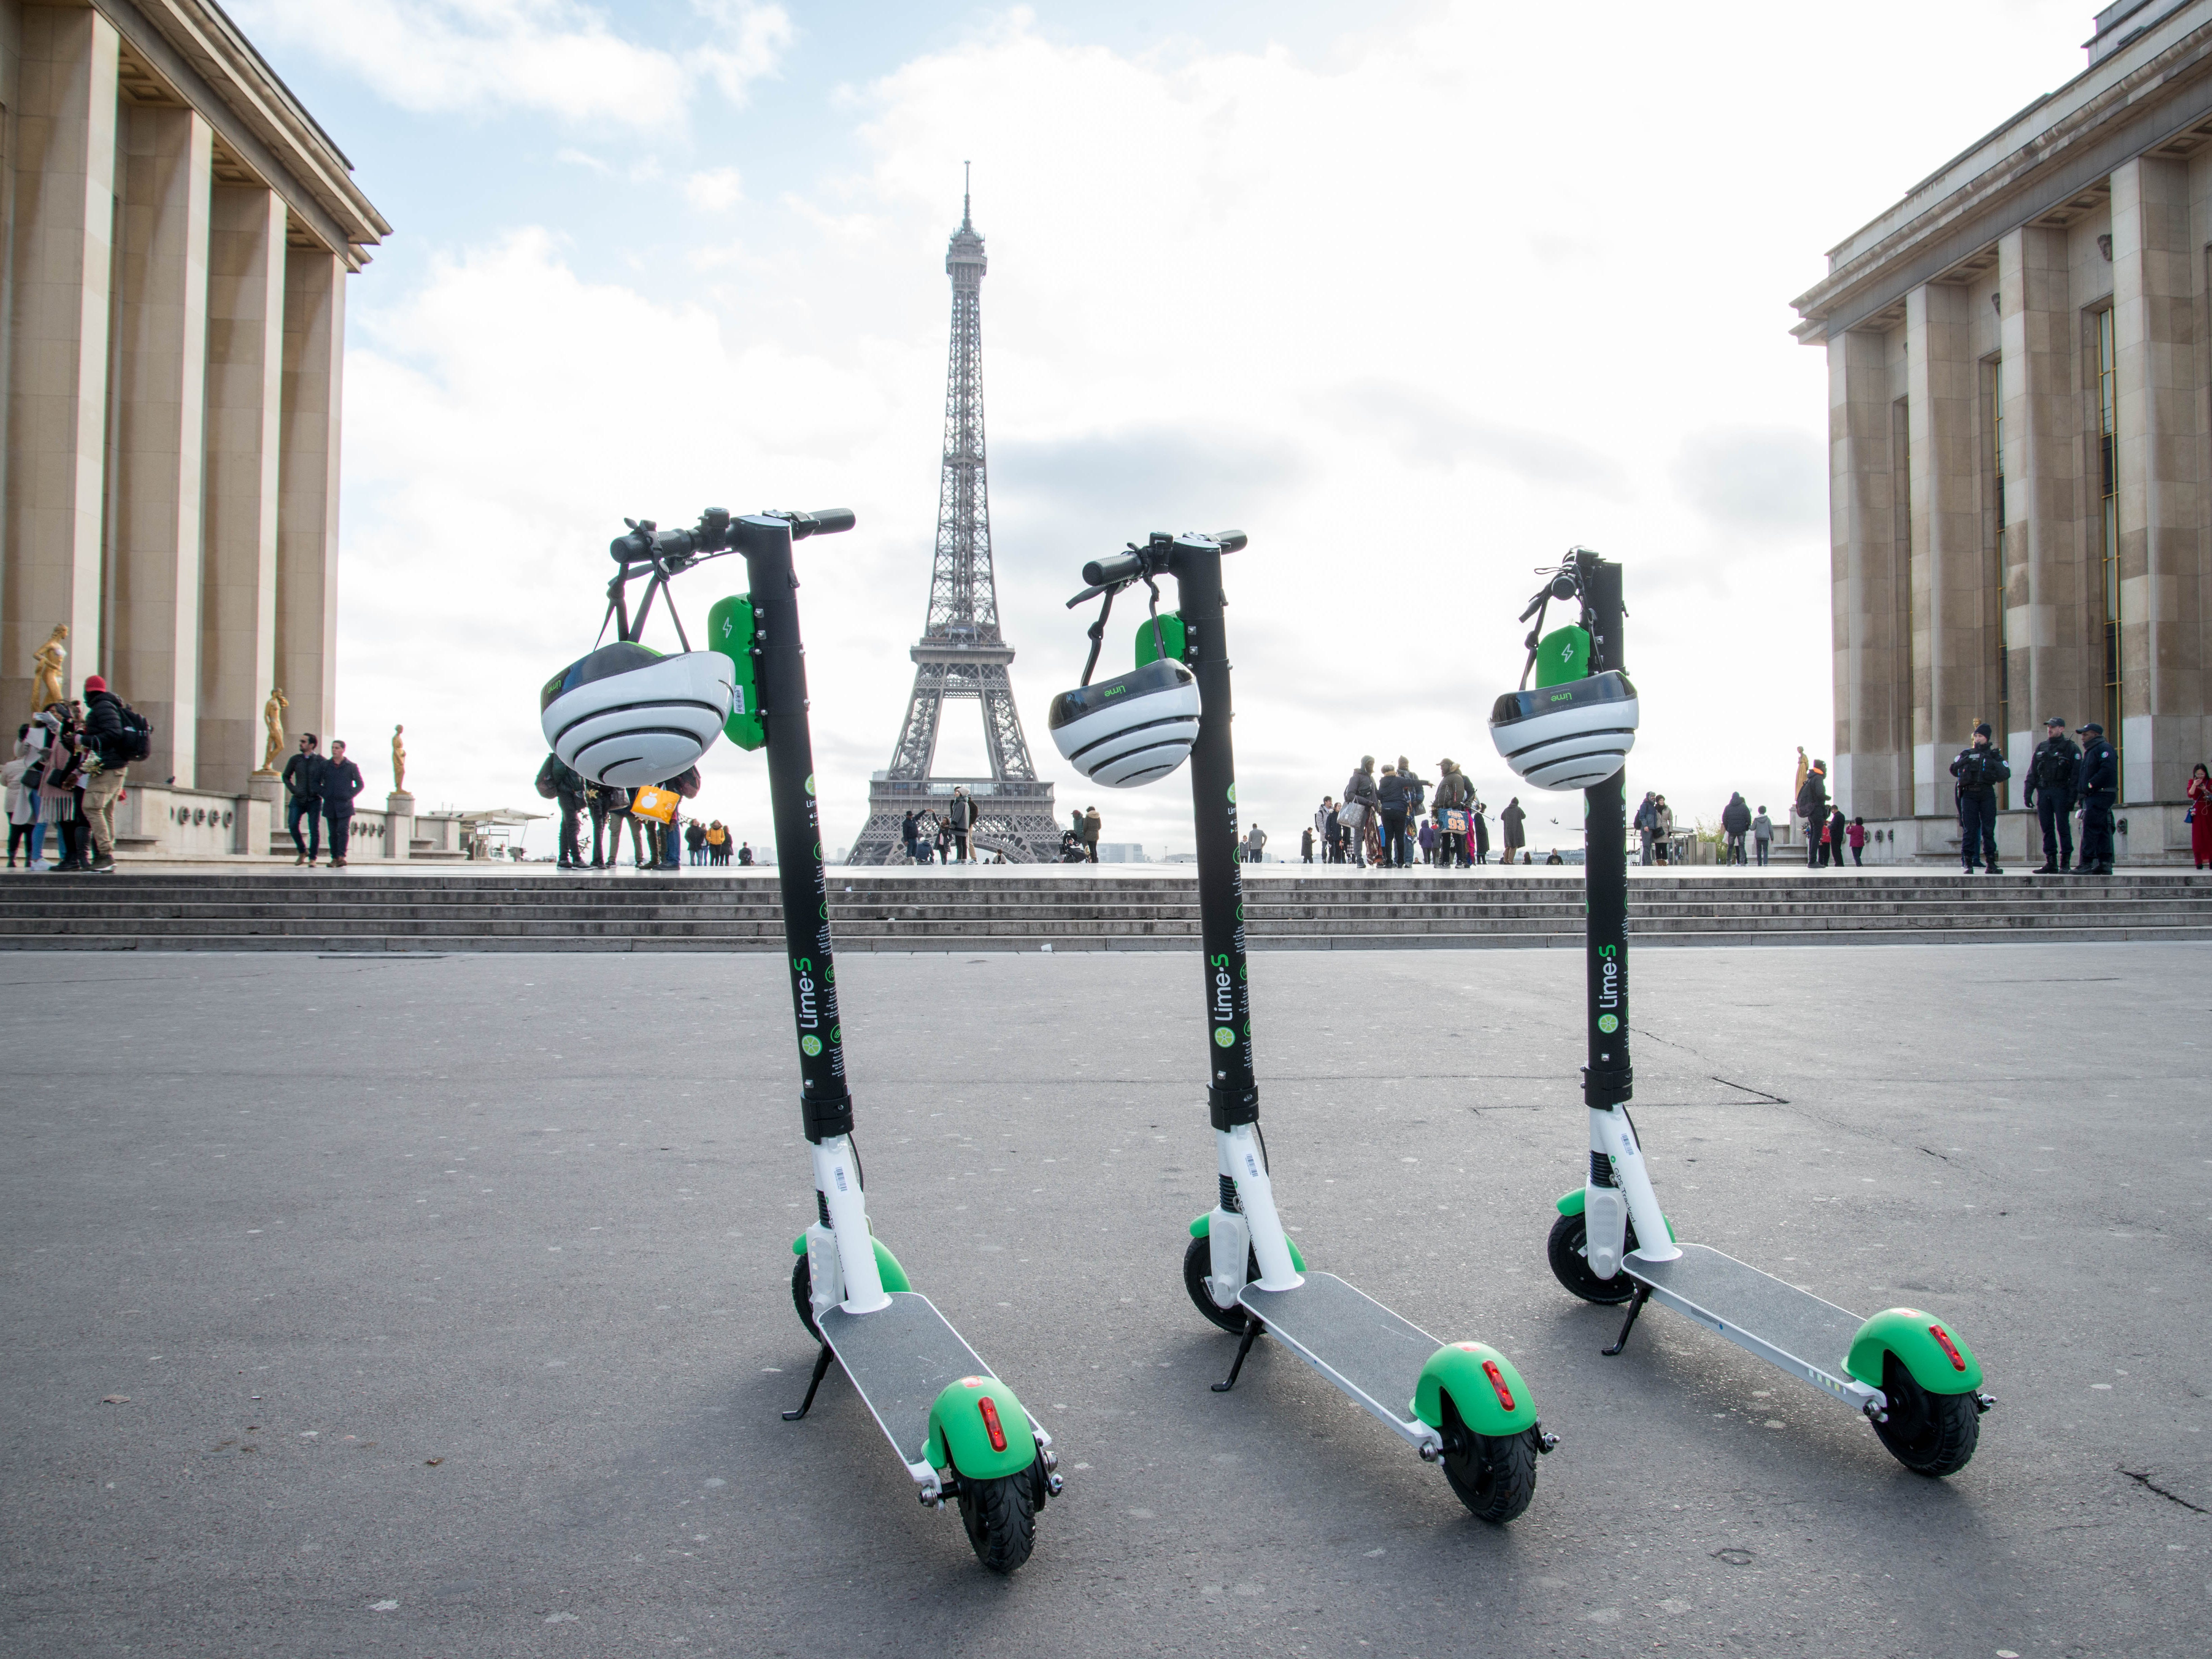 Paris has embraced the electric scooter, giving visitors and residents a breezy alternative to the Metro.